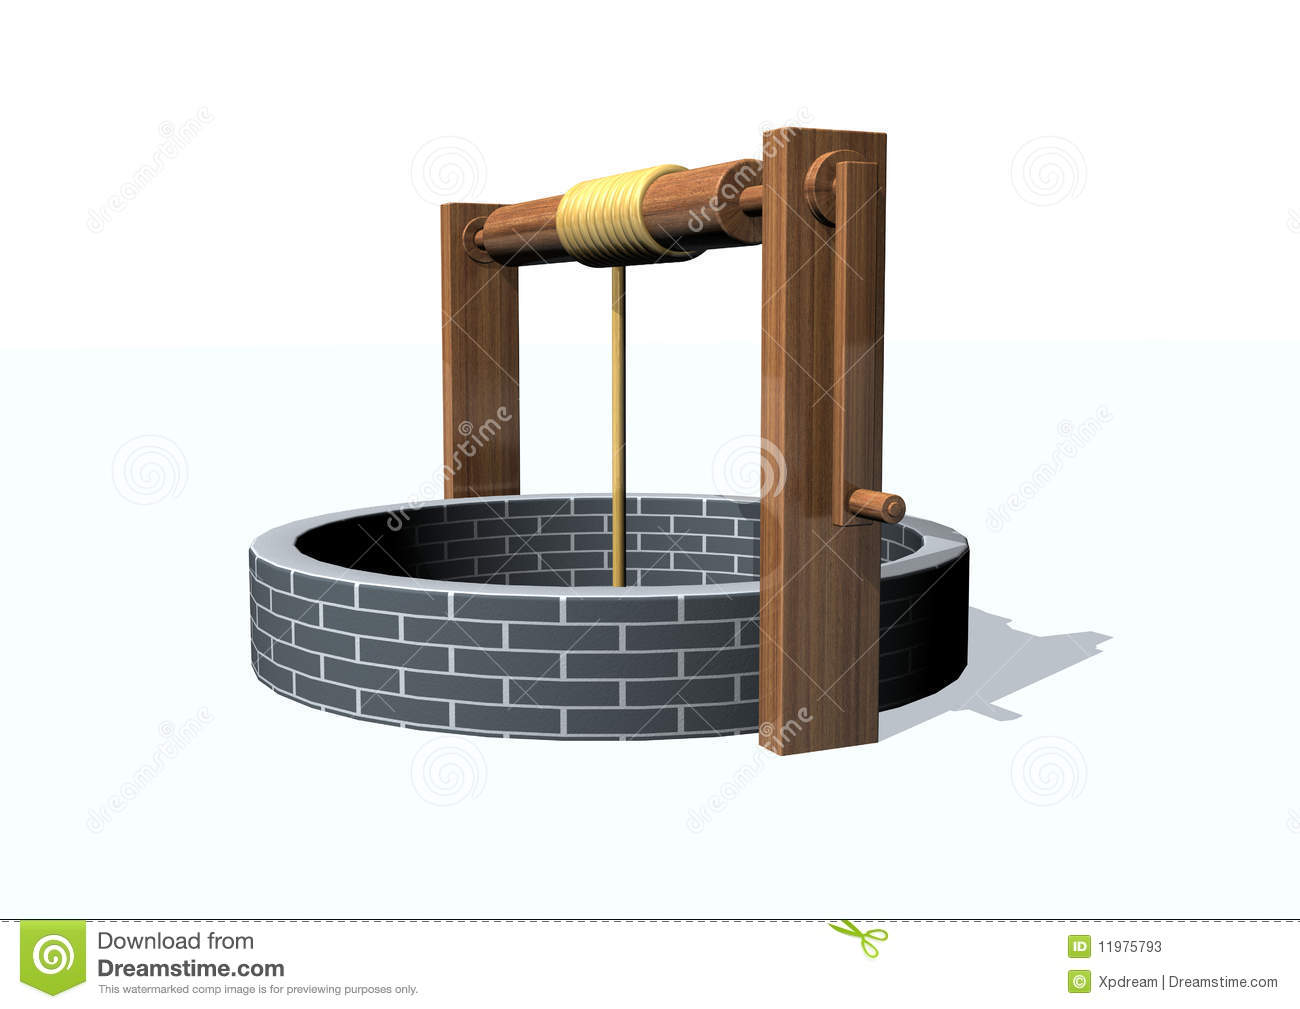 Water Well Clipart Old Well Stock Photos #opV2XH.